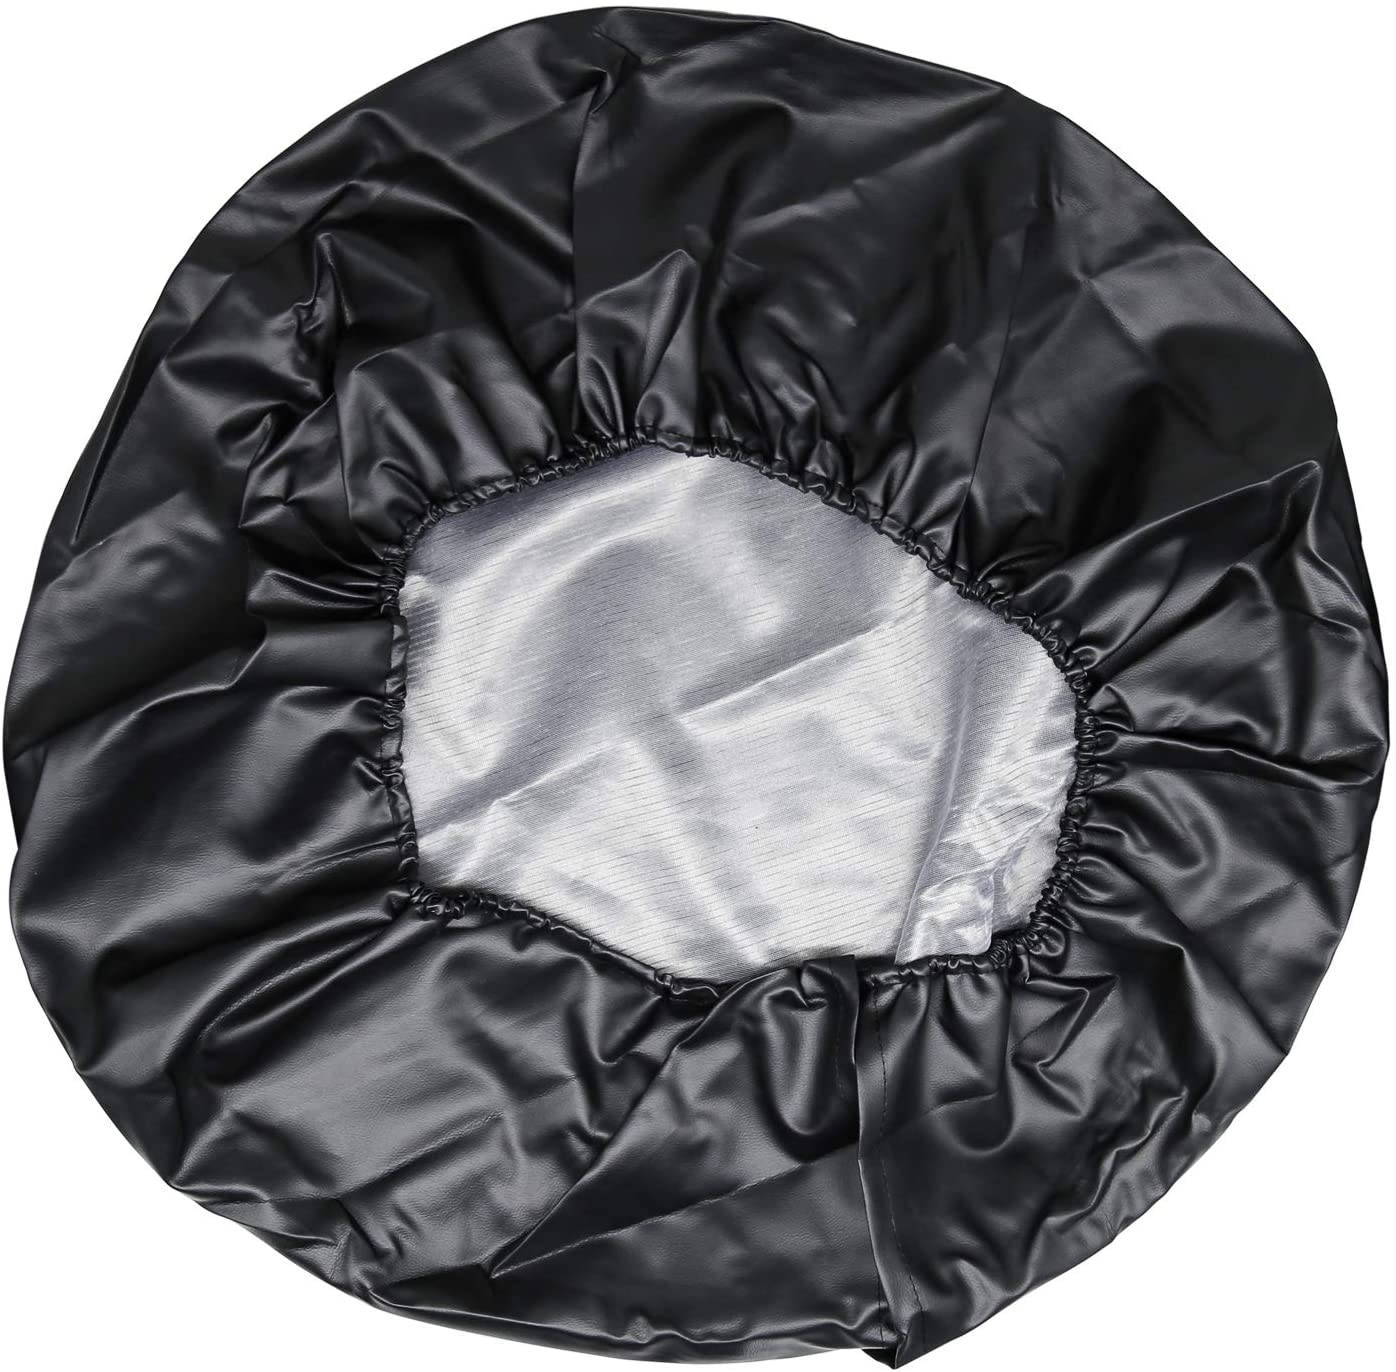 RV Vozada Spare Tire Cover Universal Wheel Tire Cover Waterproof Dustproof Protector- for Trailer SUV and Many Vehicle Black, Diameter 22-23